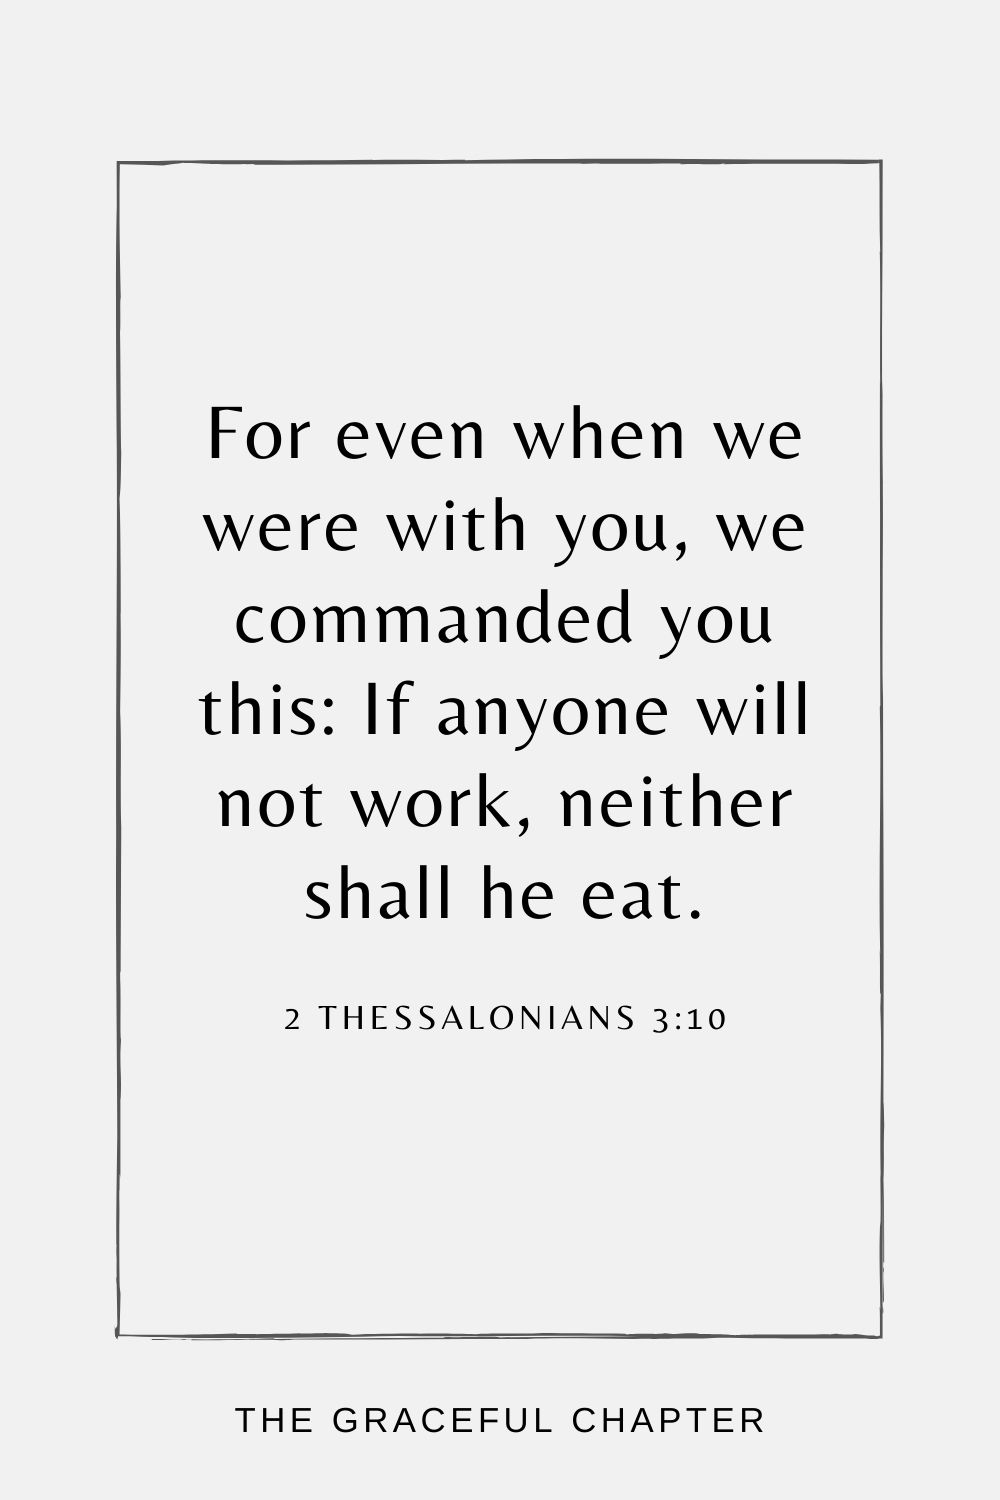 For even when we were with you, we commanded you this: If anyone will not work, neither shall he eat. 2 Thessalonians 3:10